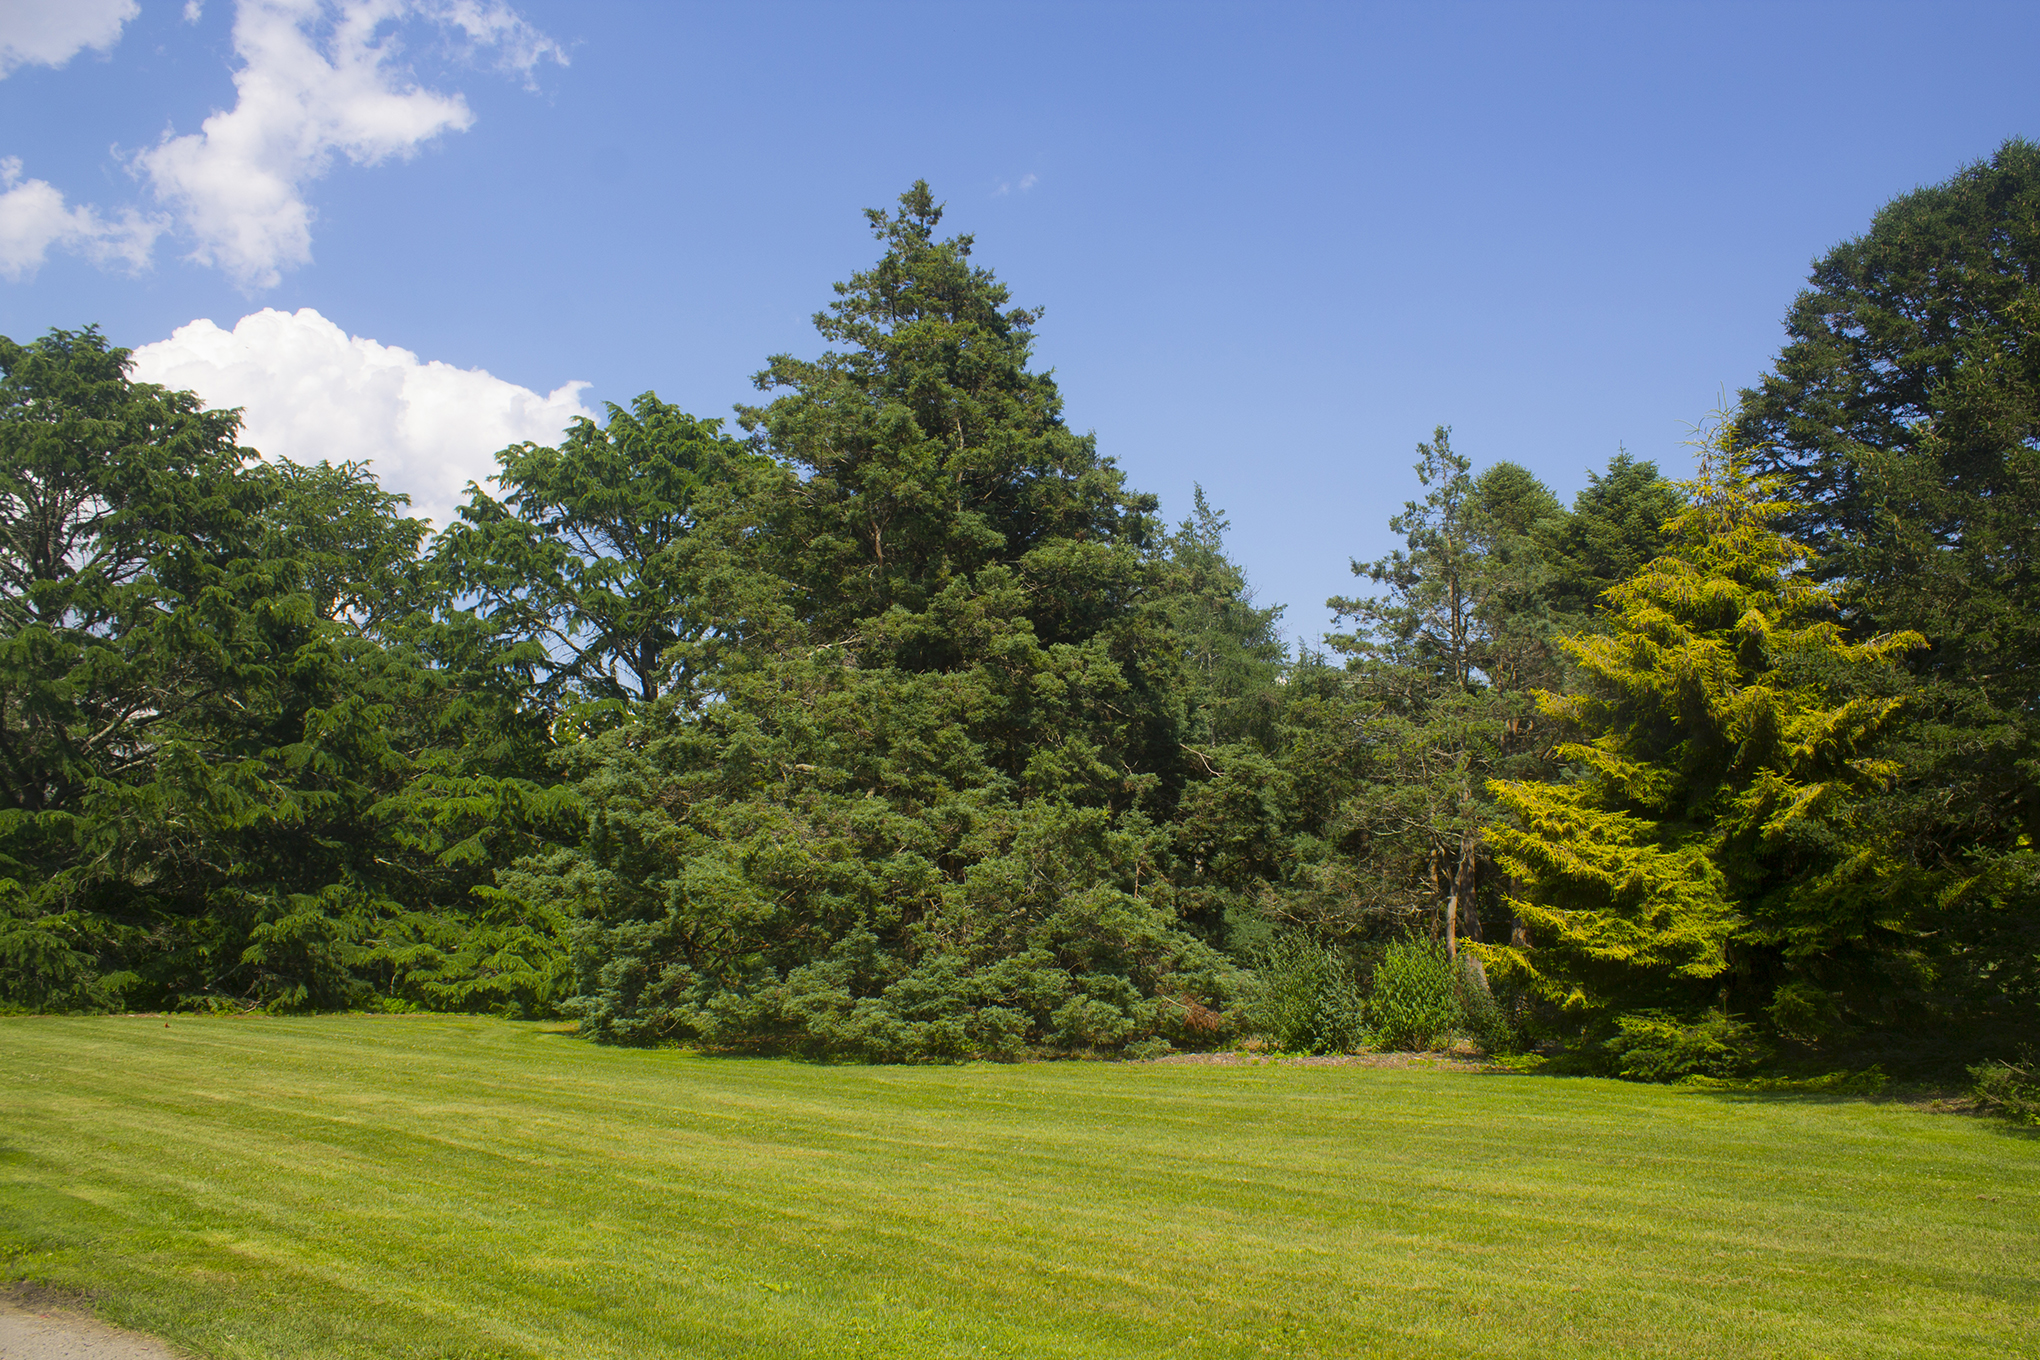 Photograph of New Pinetum by Courtney Pure